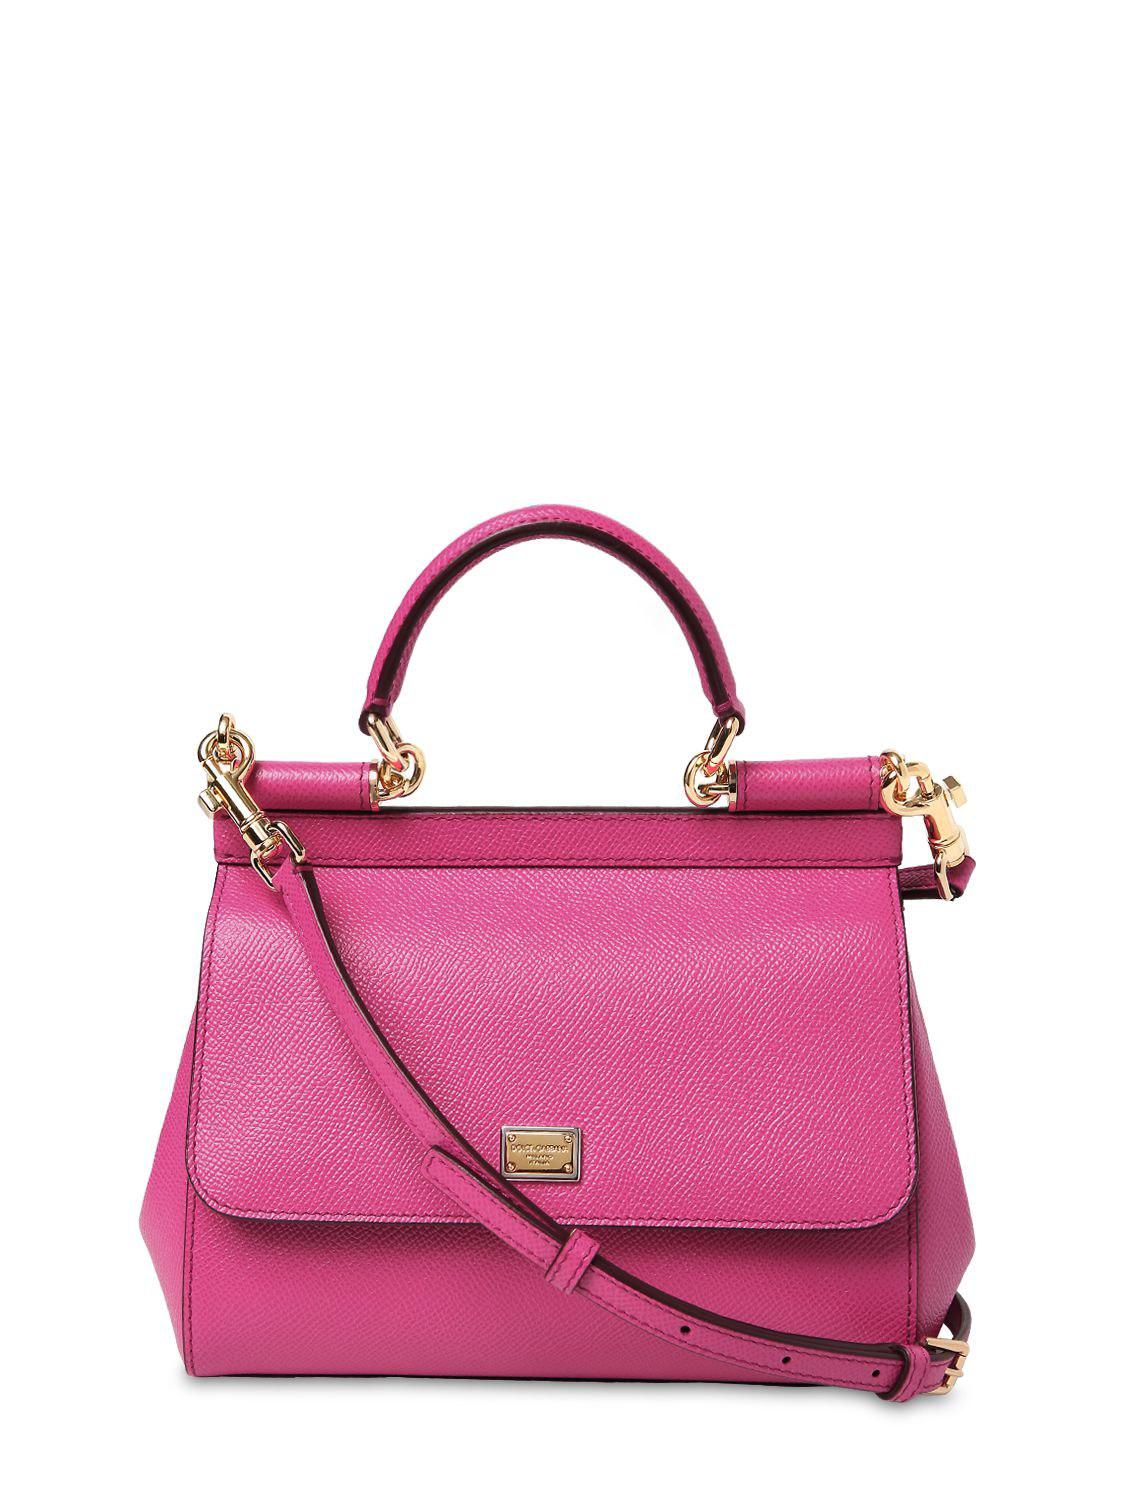 Dolce   Gabbana Small Sicily Dauphine Leather Bag in Pink - Lyst f646b40487325